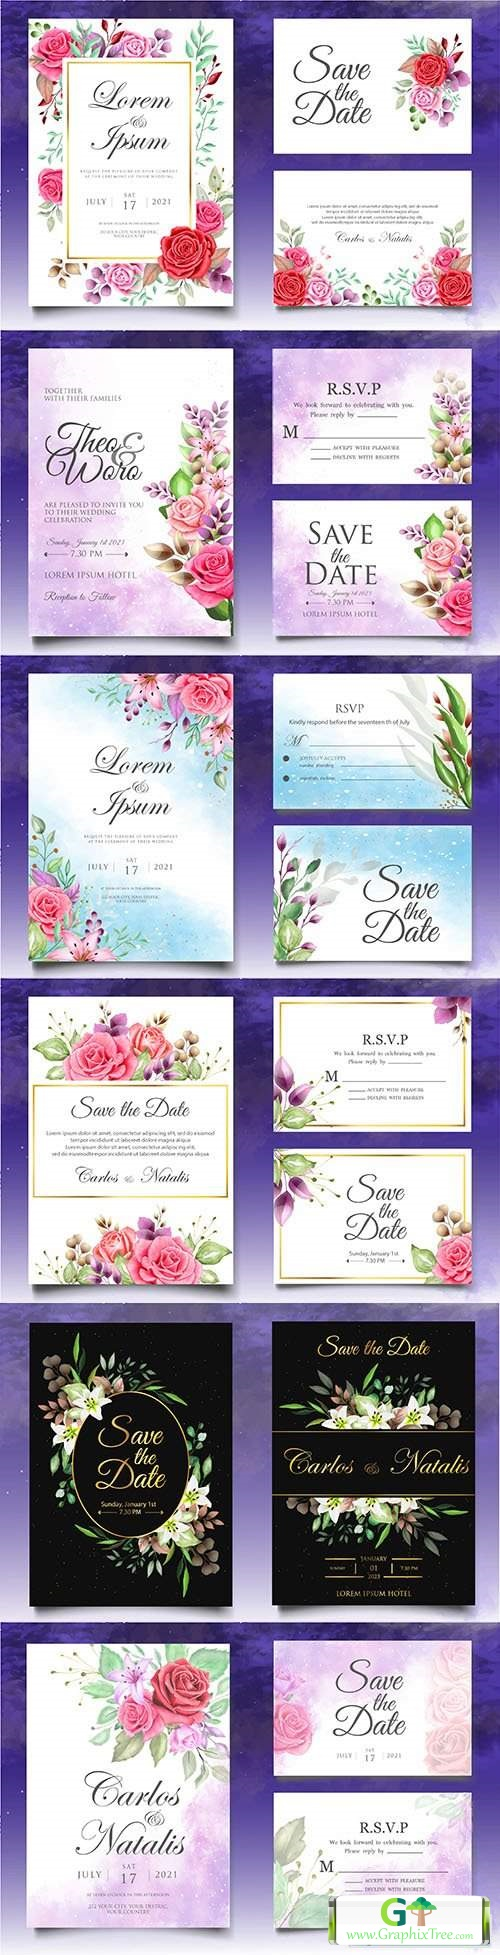 Beautiful watercolor floral template wedding invitation